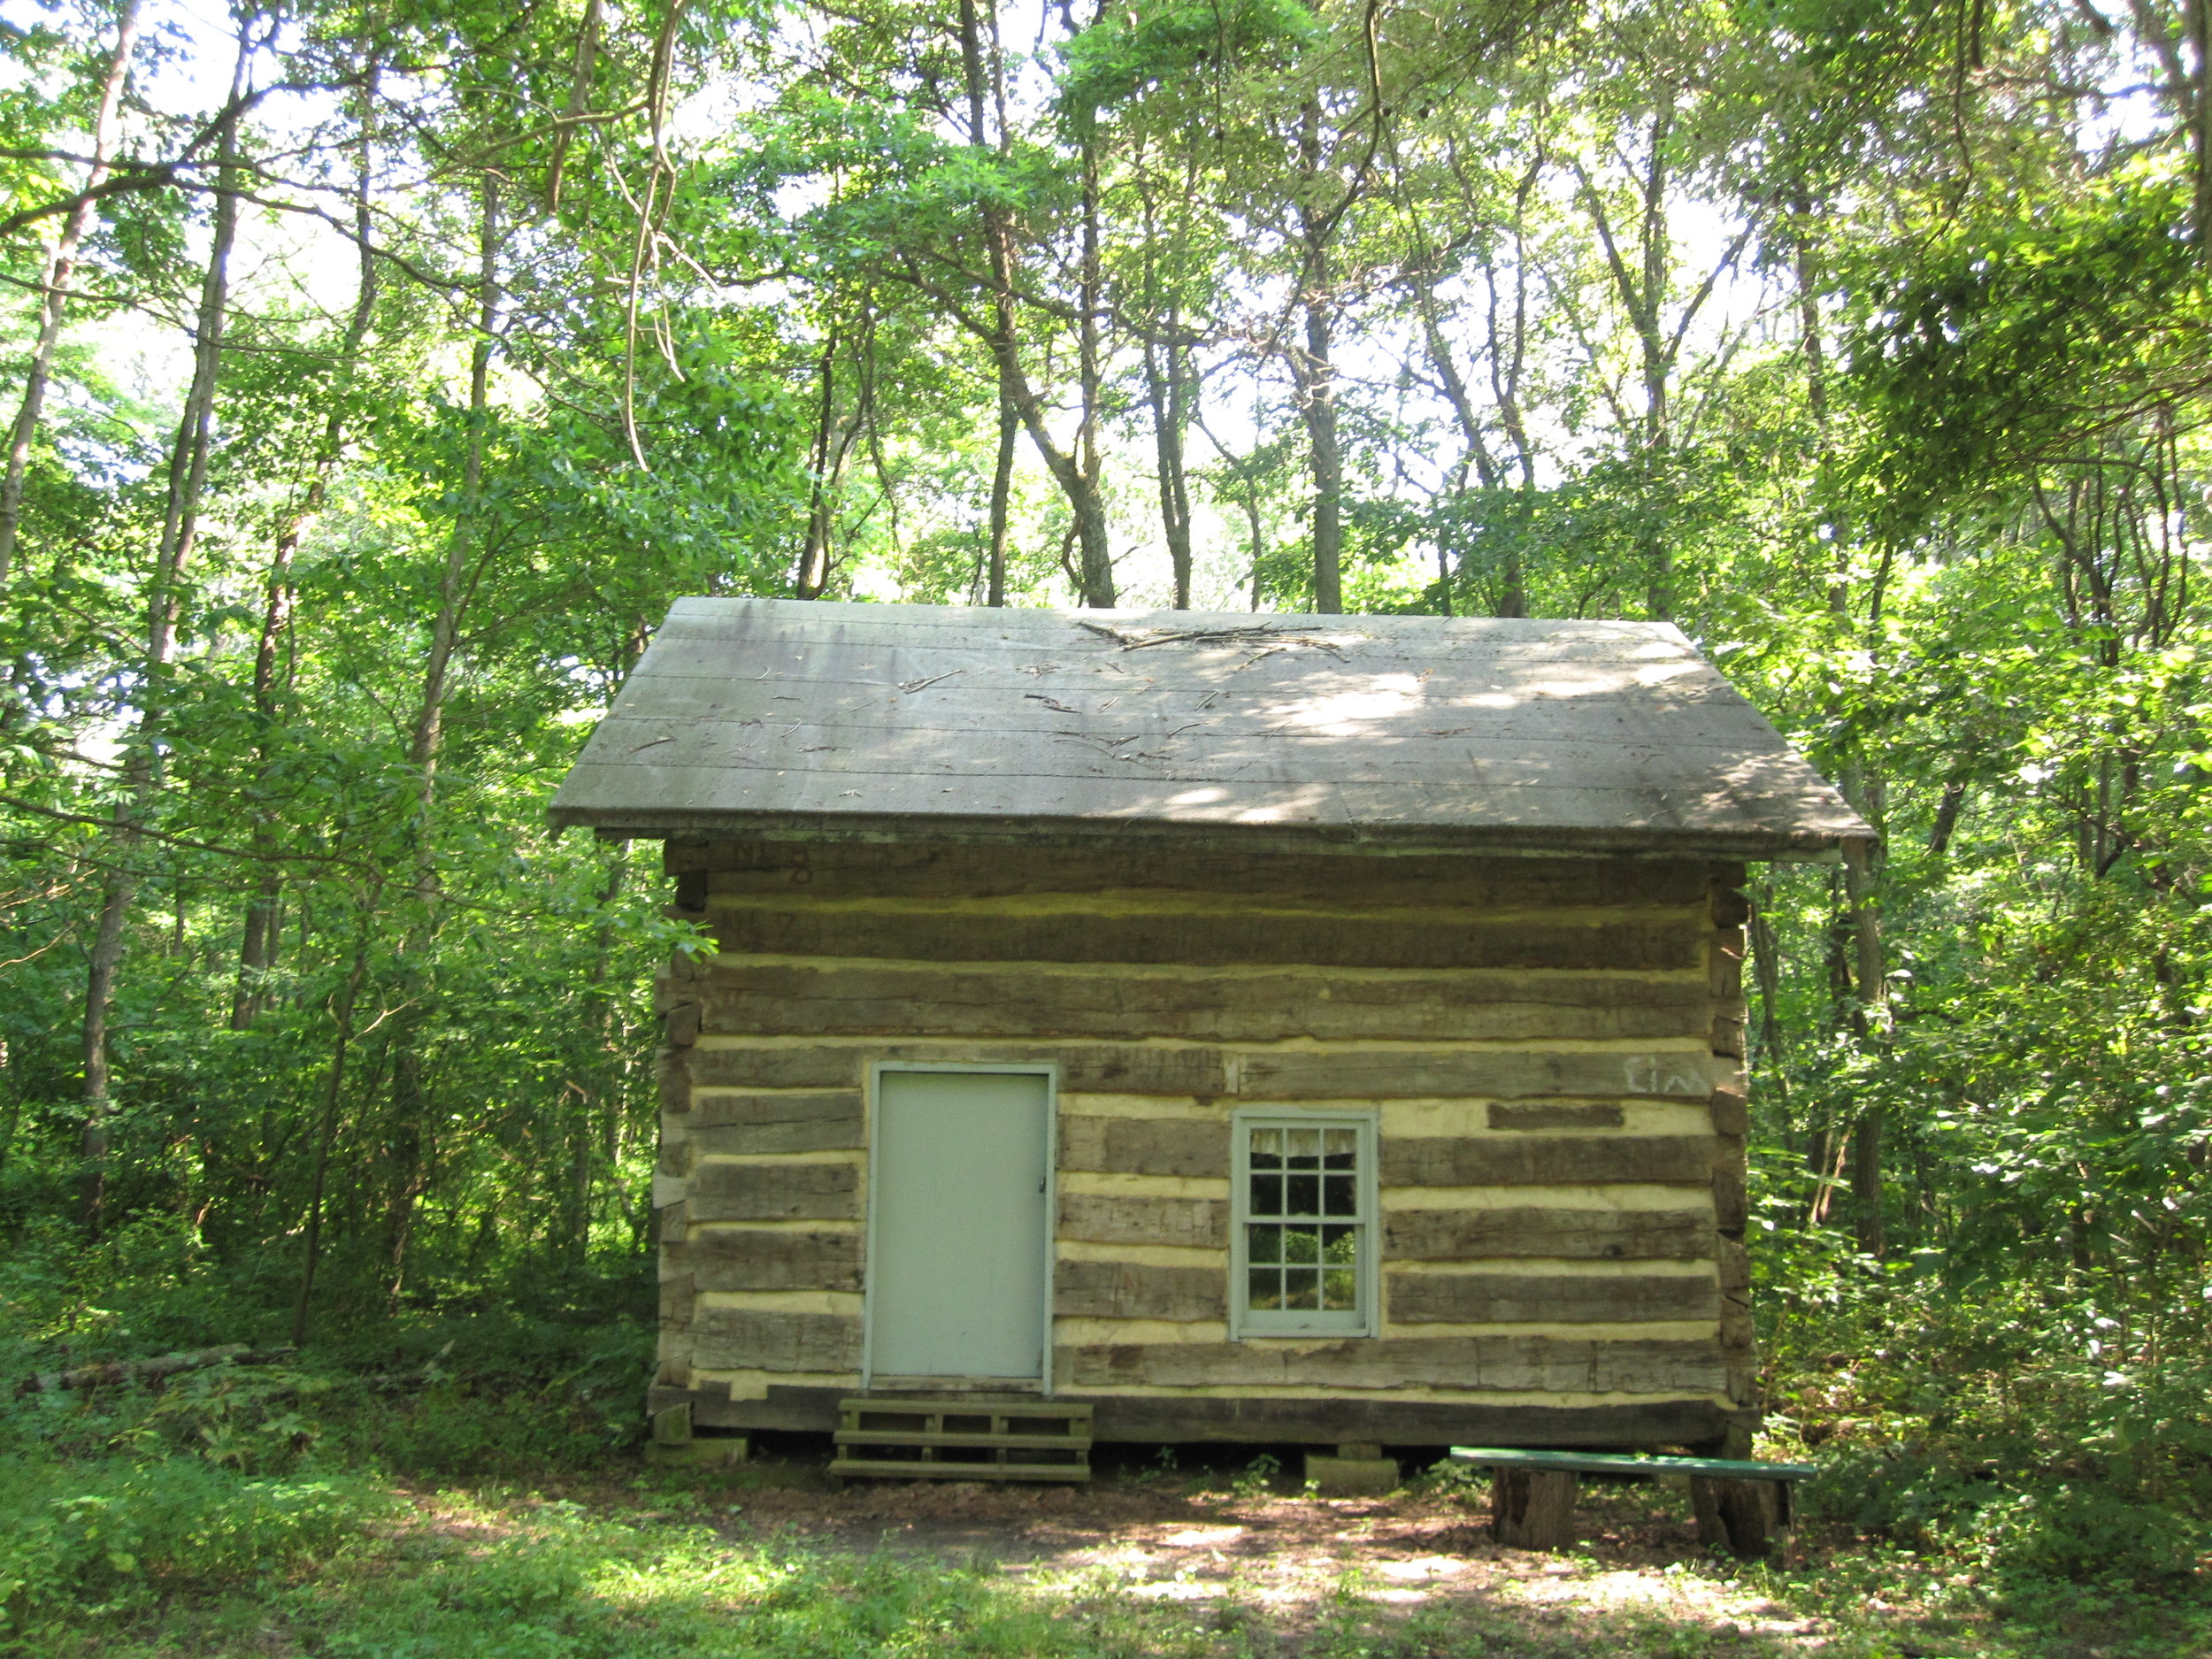 Schwarm Cabin - This cabin was built by John and Barbara Schwarm in the late 1840's. John was born in Lebanon County Pennsylvania on June 15, 1812. He married Barbara in Ohio on October 6, 1842. When they reached Illinois, John purchased land from the U.S. Government for $1.25 an acre. The location the cabin was built on was near Hickory Creek close to the Old Loogootee Cemetery just north of Route 185 at the top of a hill.When John and Barbara settled in the area there were no church buildings, so from 1849 to December 1852 they invited their neighbors of like mind to worship with them in their home.